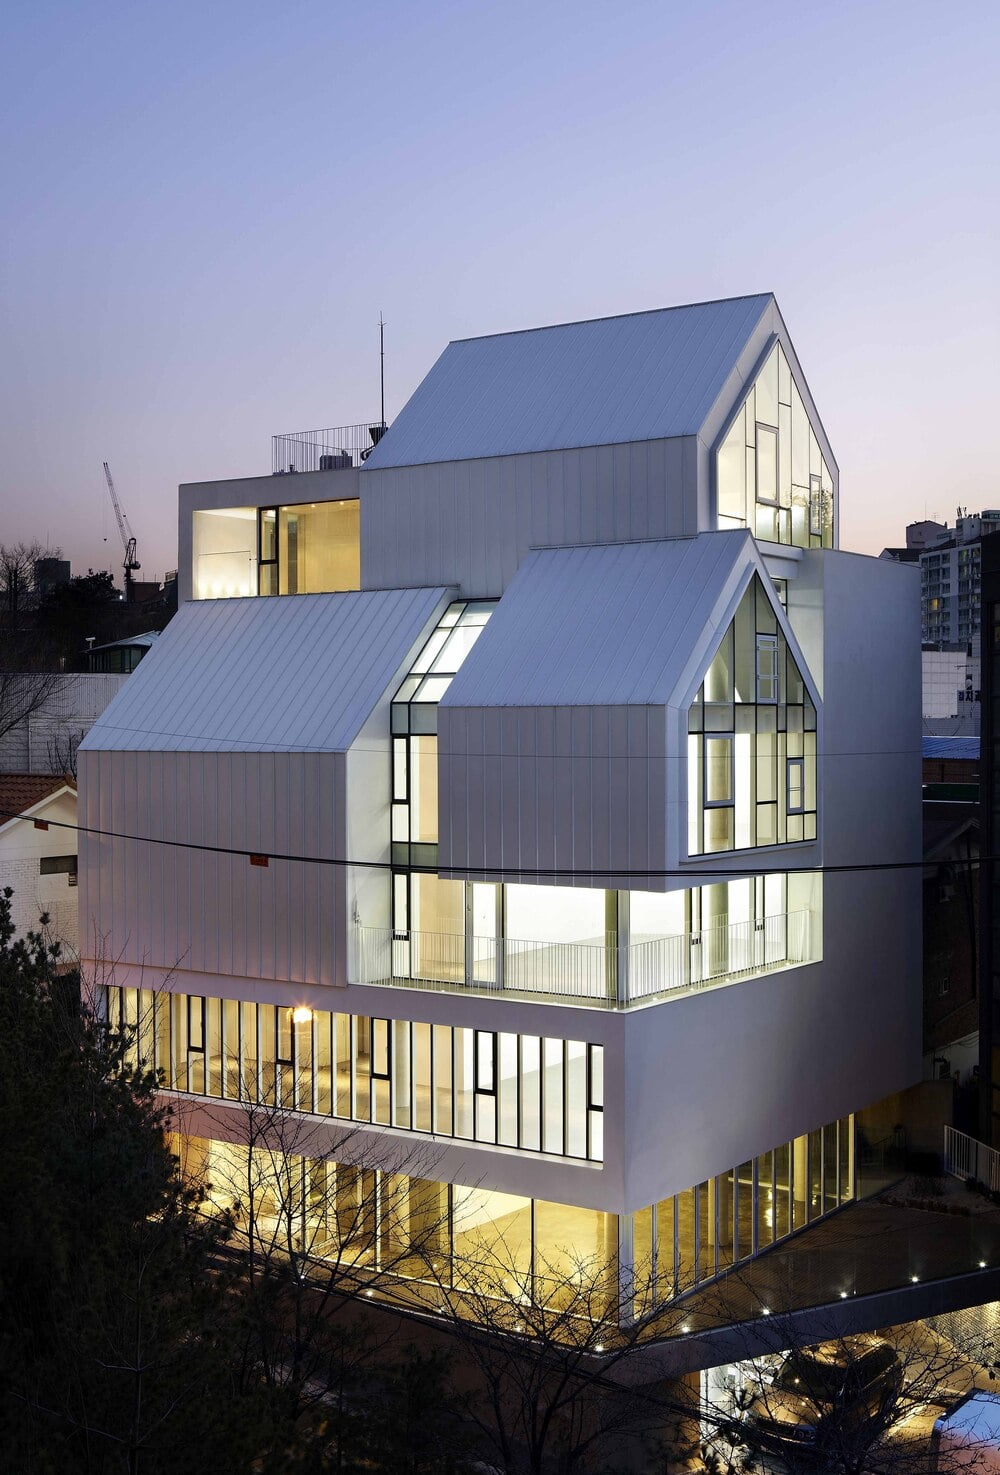 This is a nighttime view of the house that has bright white exteriors and warm yellow glow to its windows.